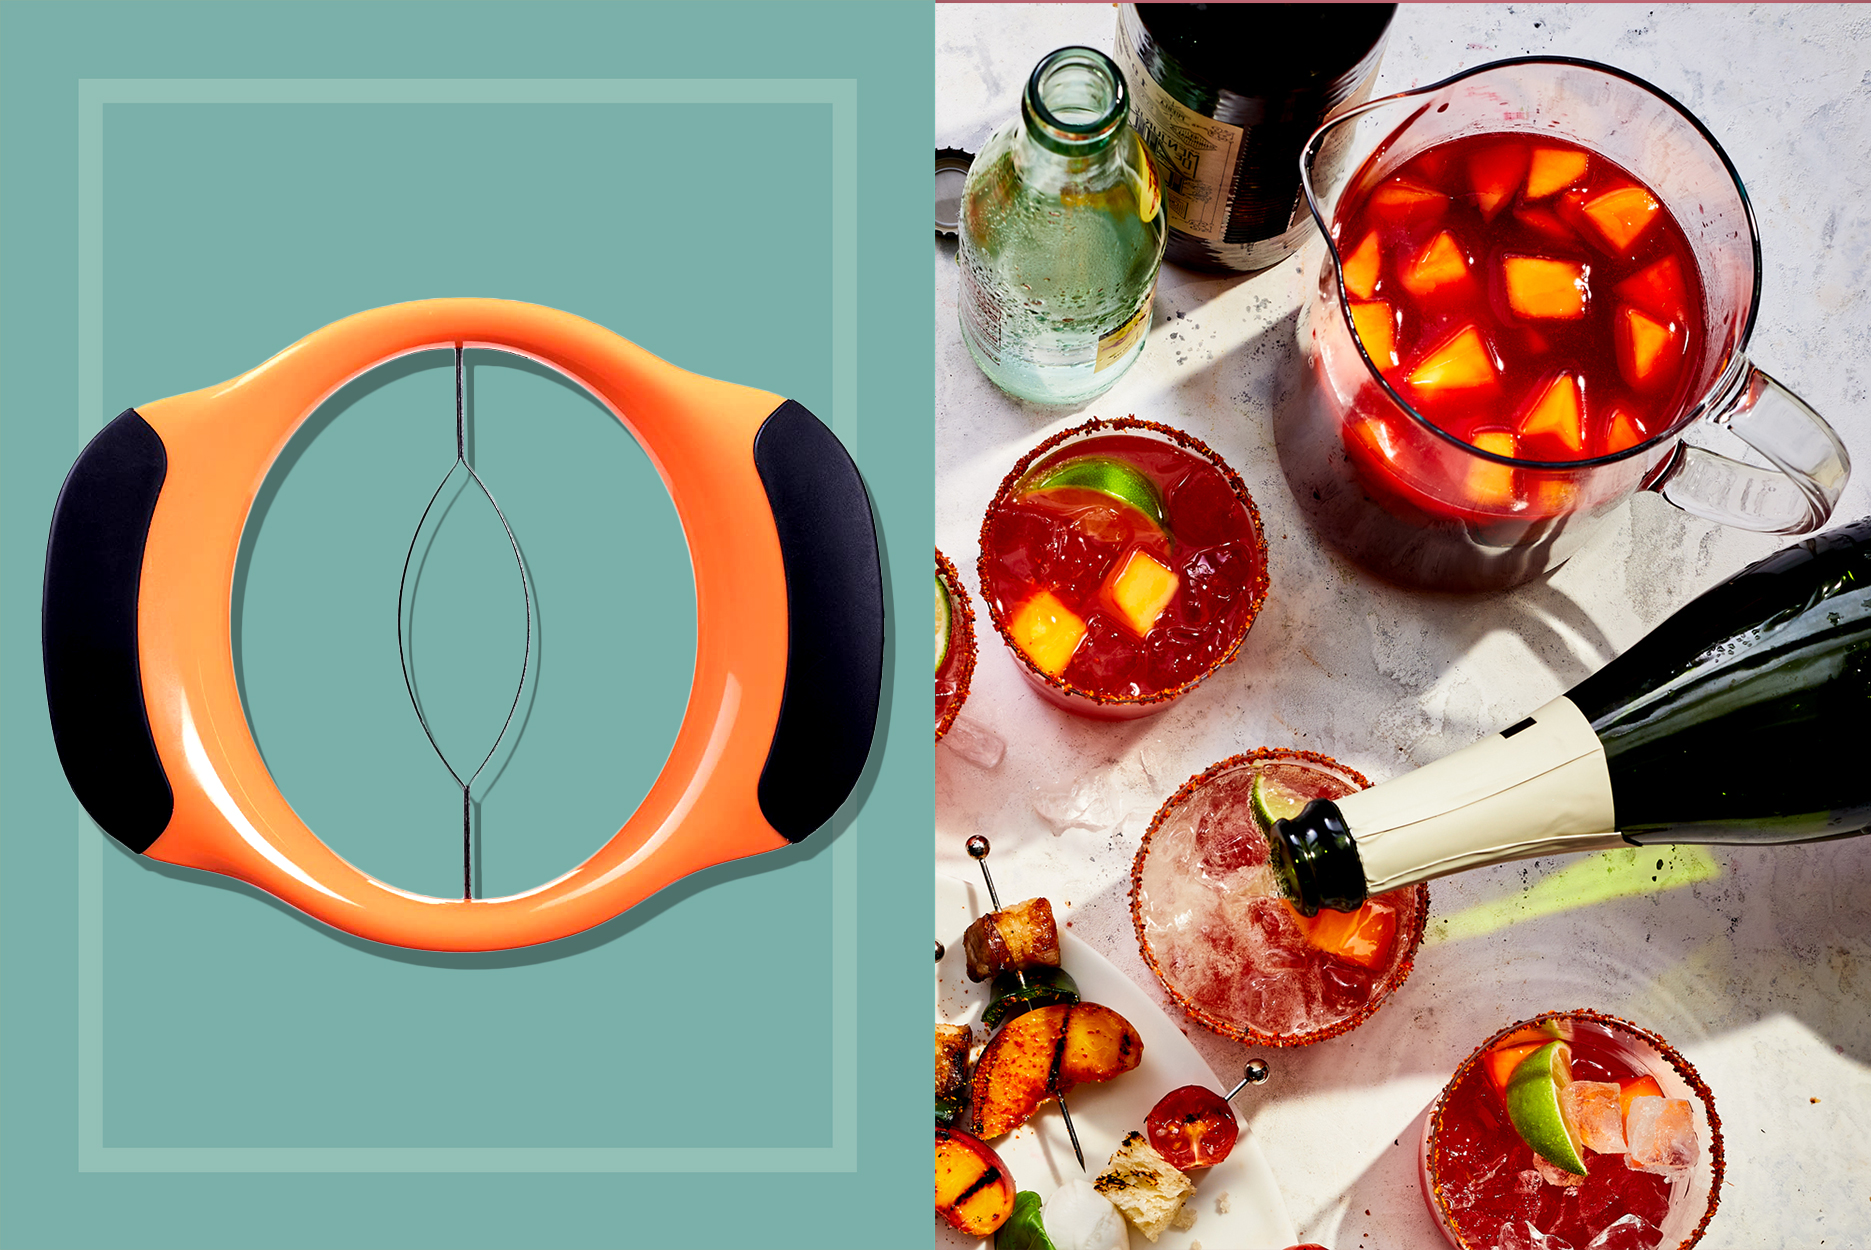 Summer Fruit Cooking Tools | Mango Slicer